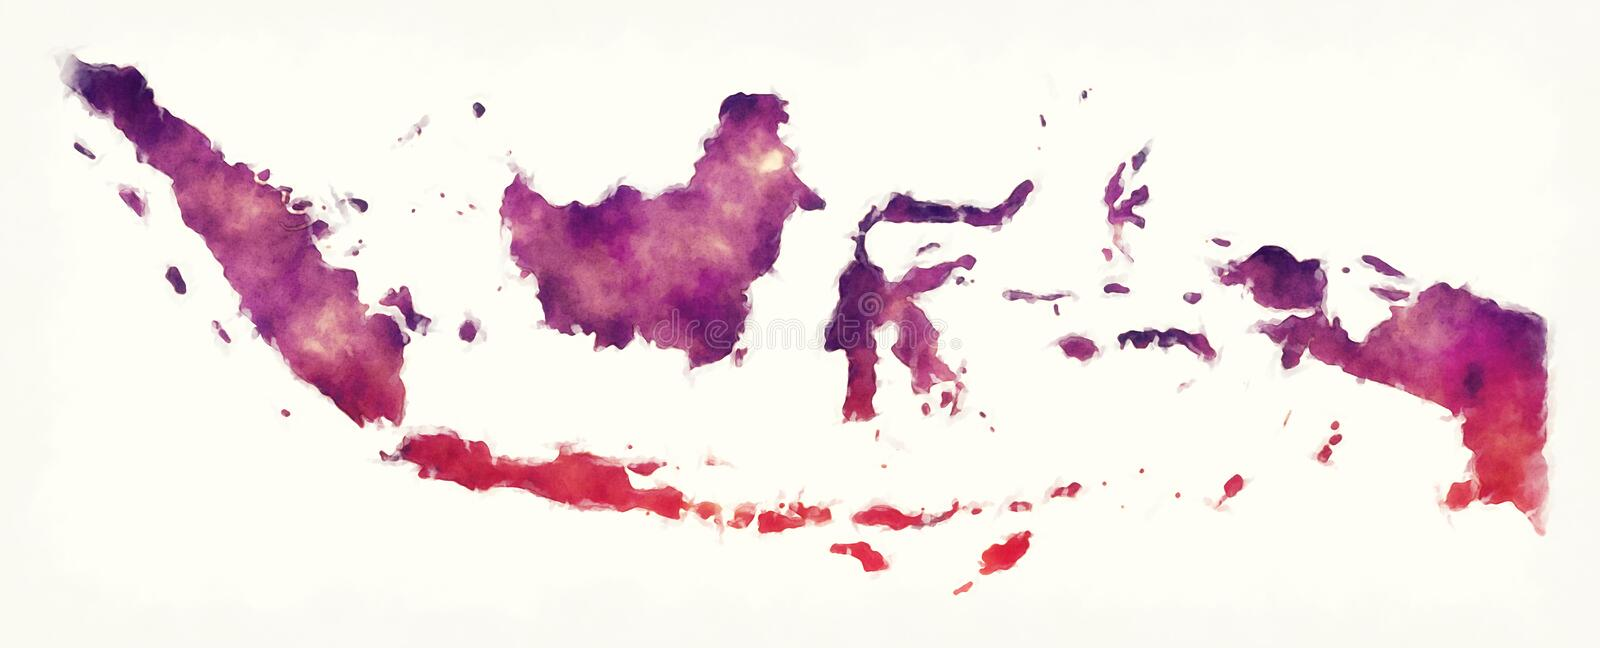 Indonesia watercolor map in front of a white background stock illustration